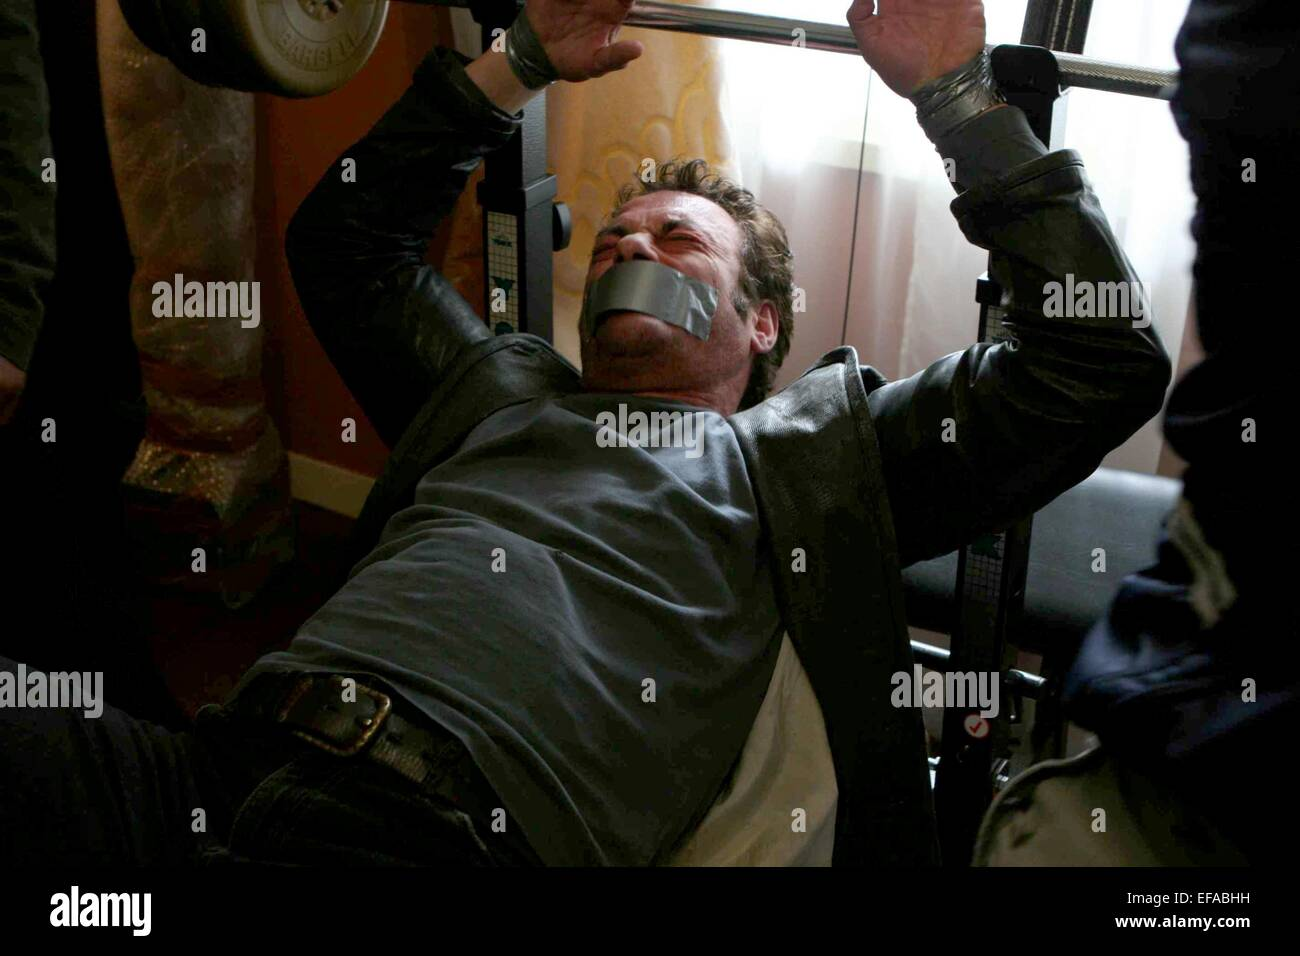 JEAN-CLAUDE VAN DAMME UNTIL DEATH (2007) - Stock Image